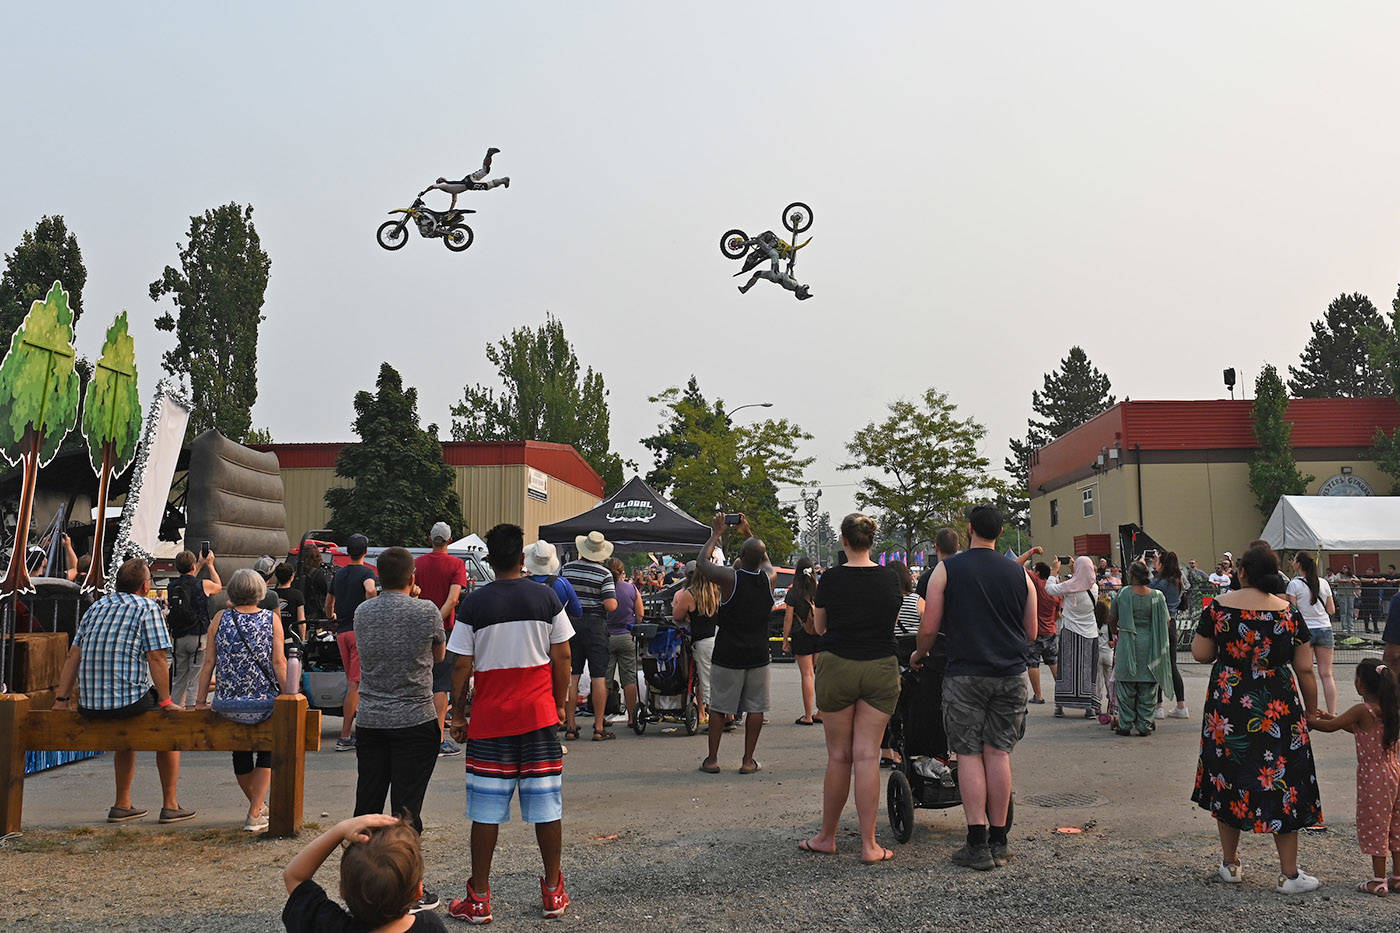 Motocross riders with Global FMX from Kelowna, B.C. do mid-air stunts during the Abbotsford Agrifair on Sunday, Aug. 1, 2021. (Jenna Hauck/ Black Press)